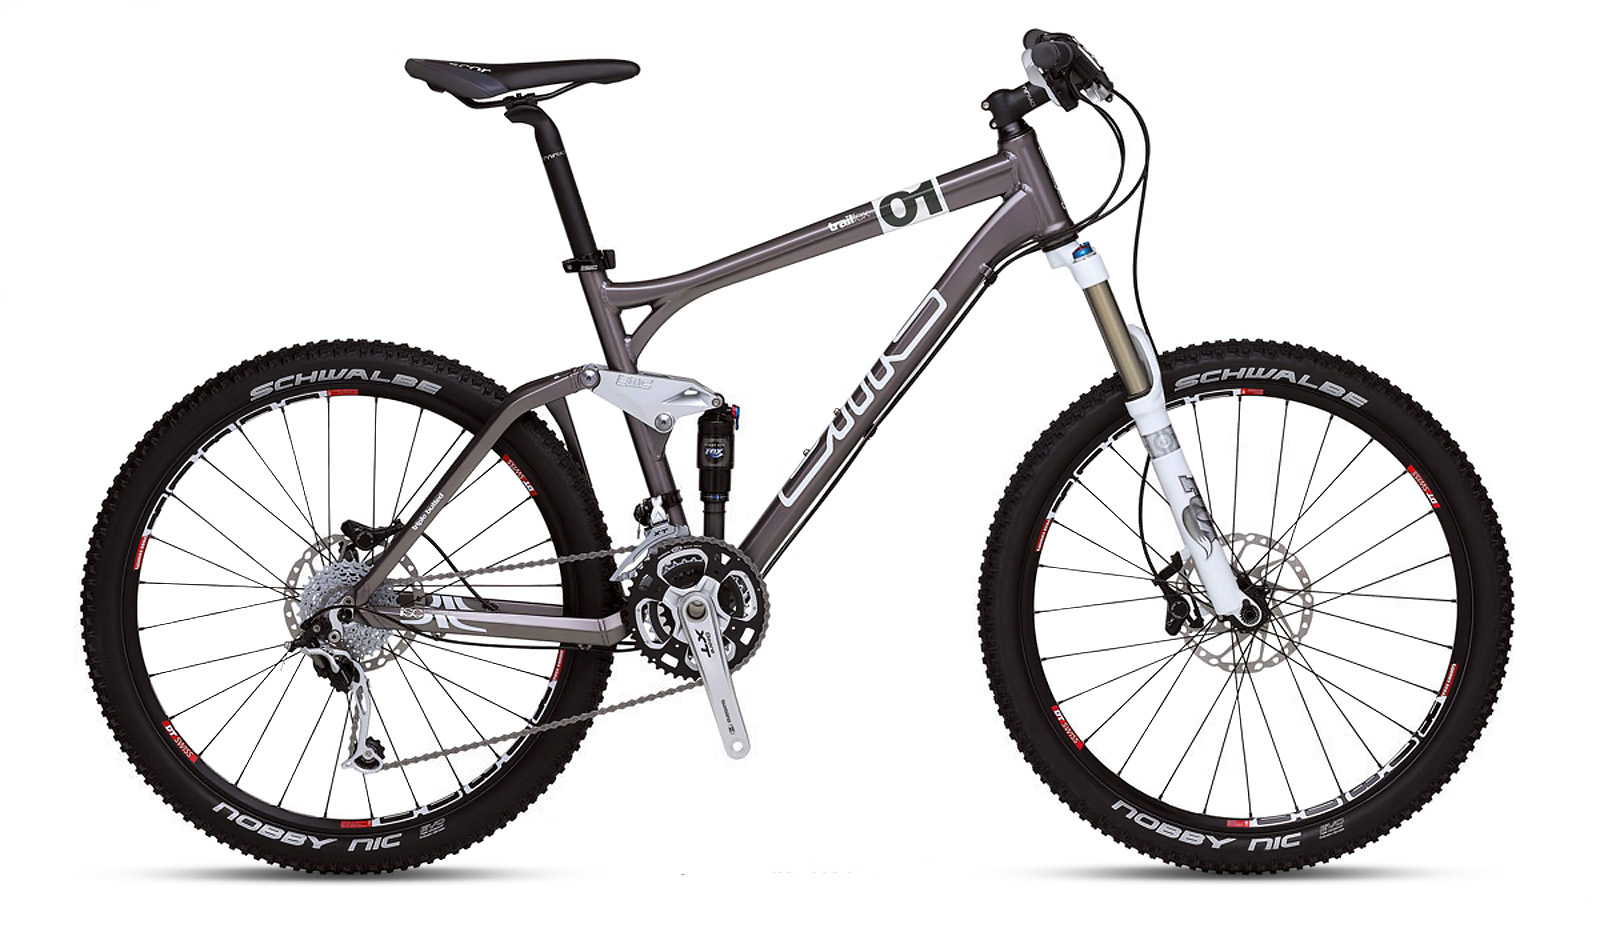 BMC TrailFox 01 mountain bike